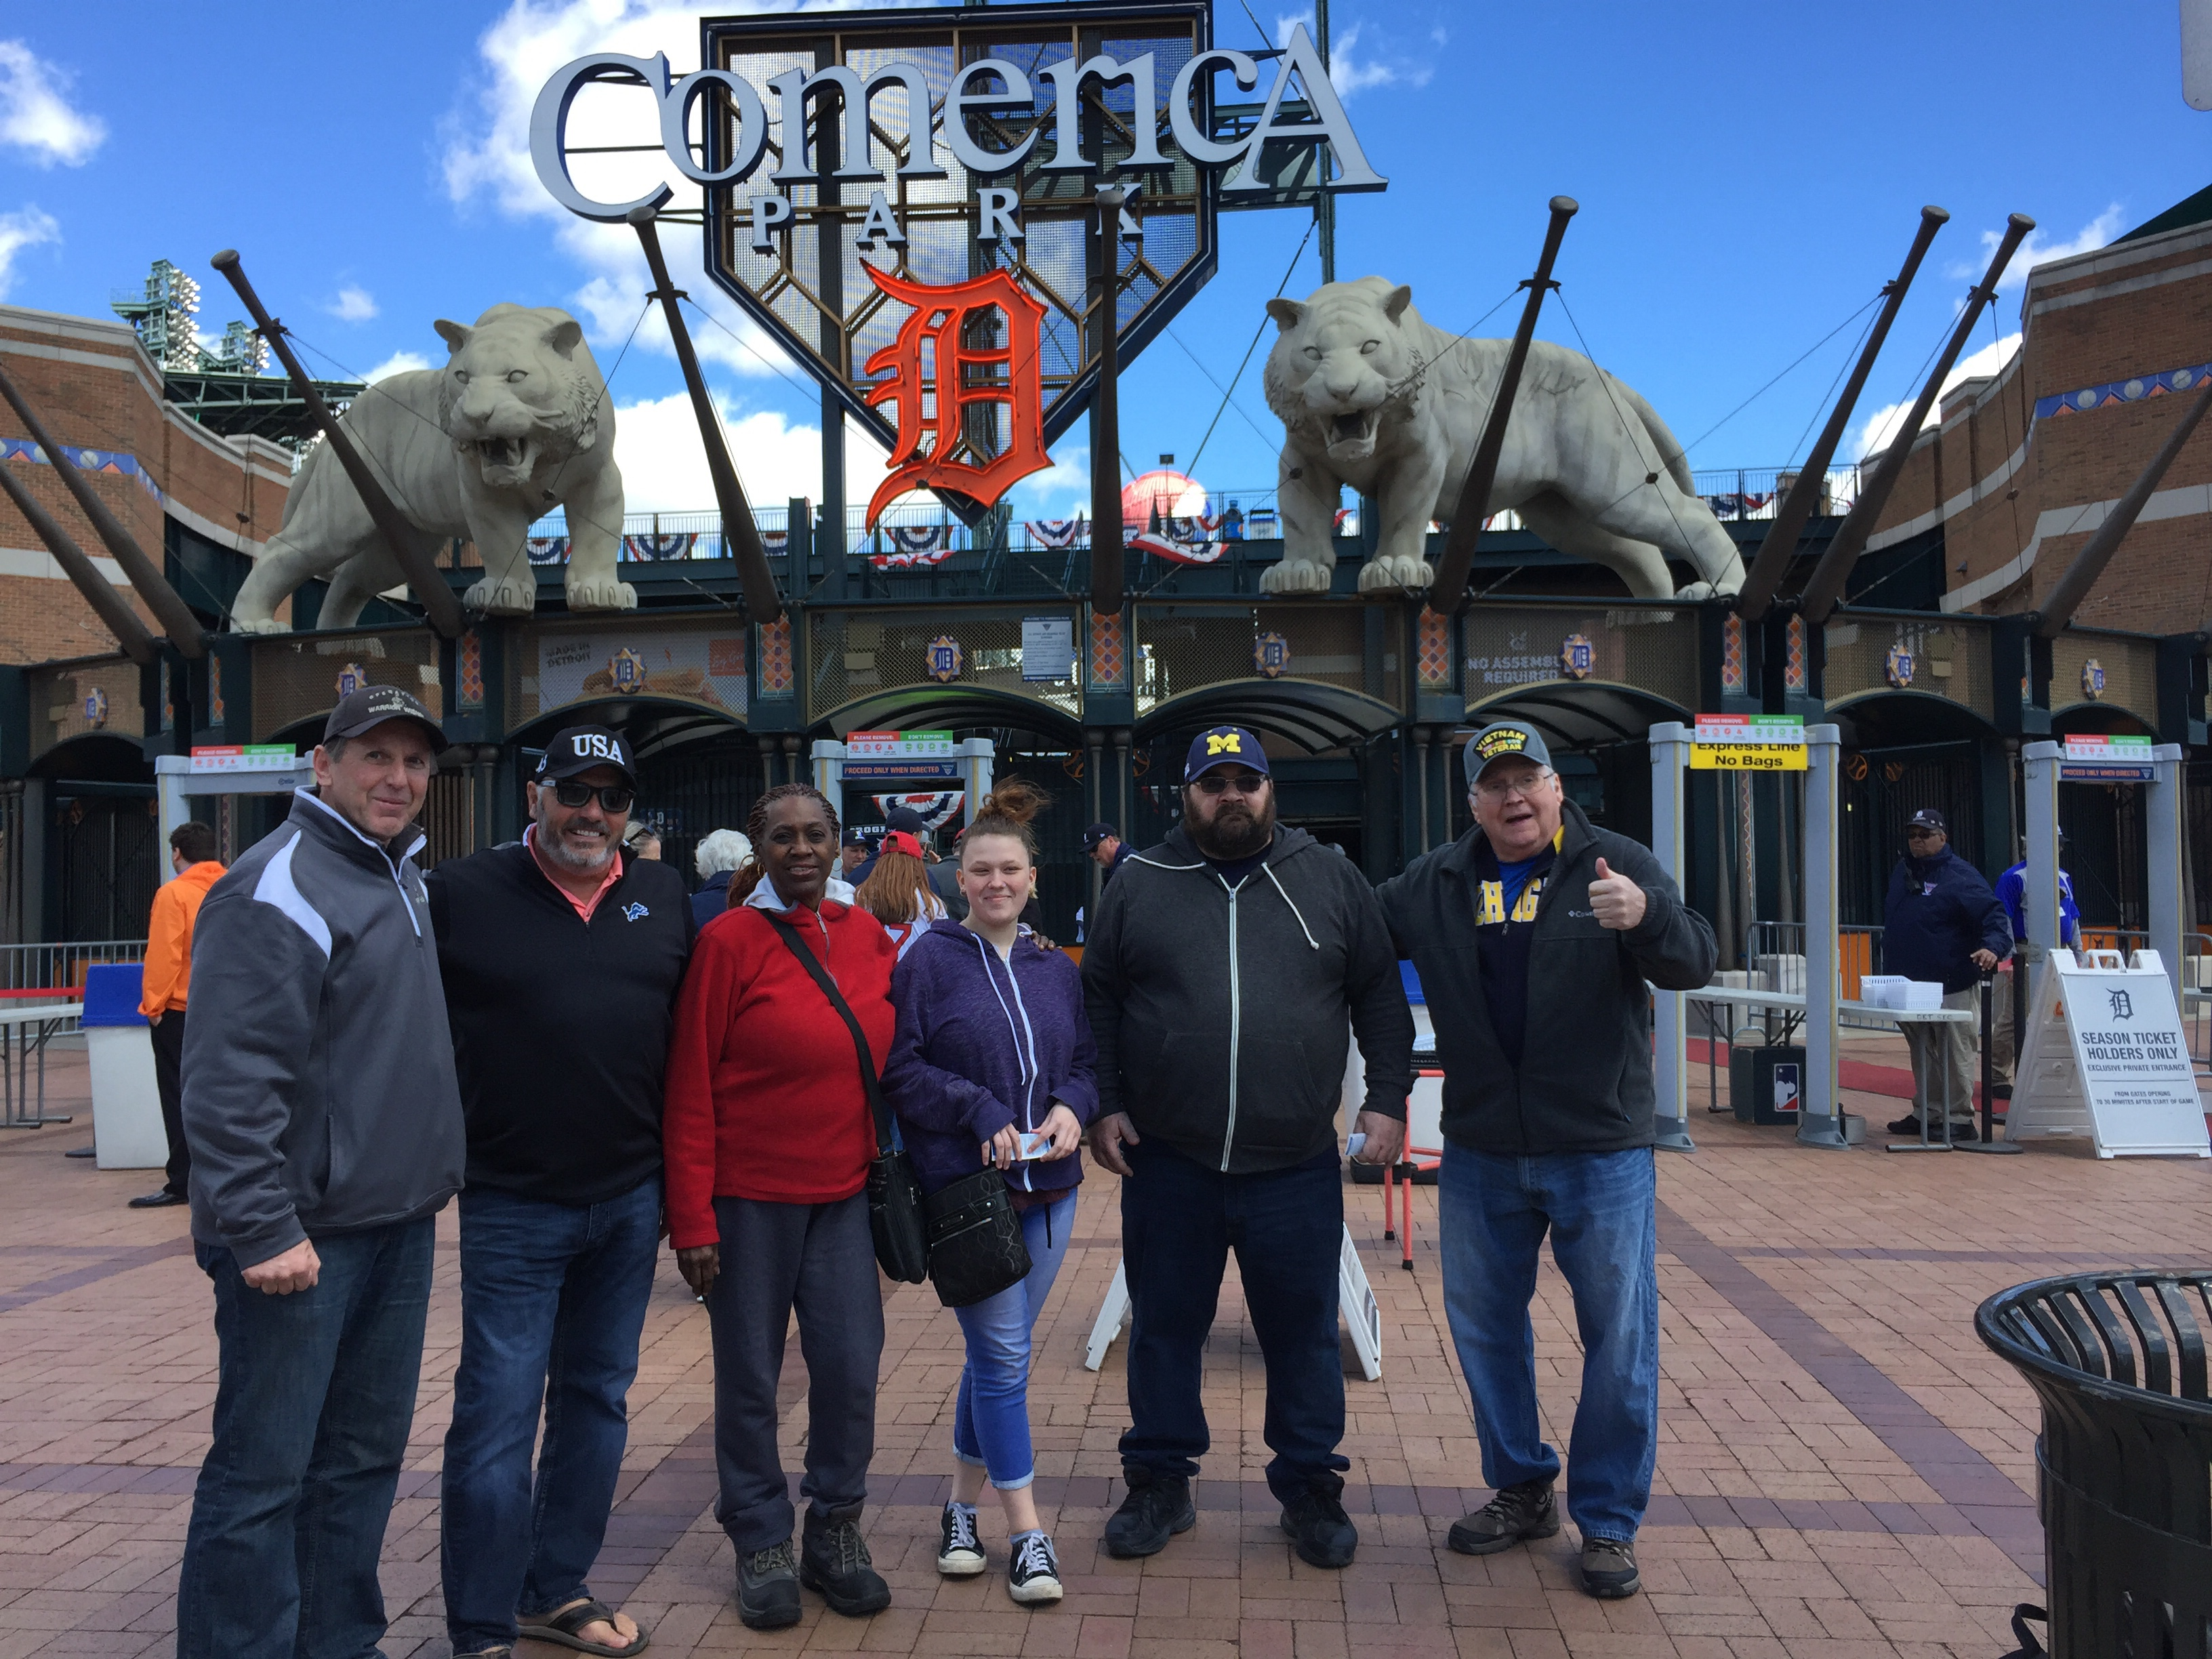 The Detroit Tigers Make Warrior Wishes Come True!